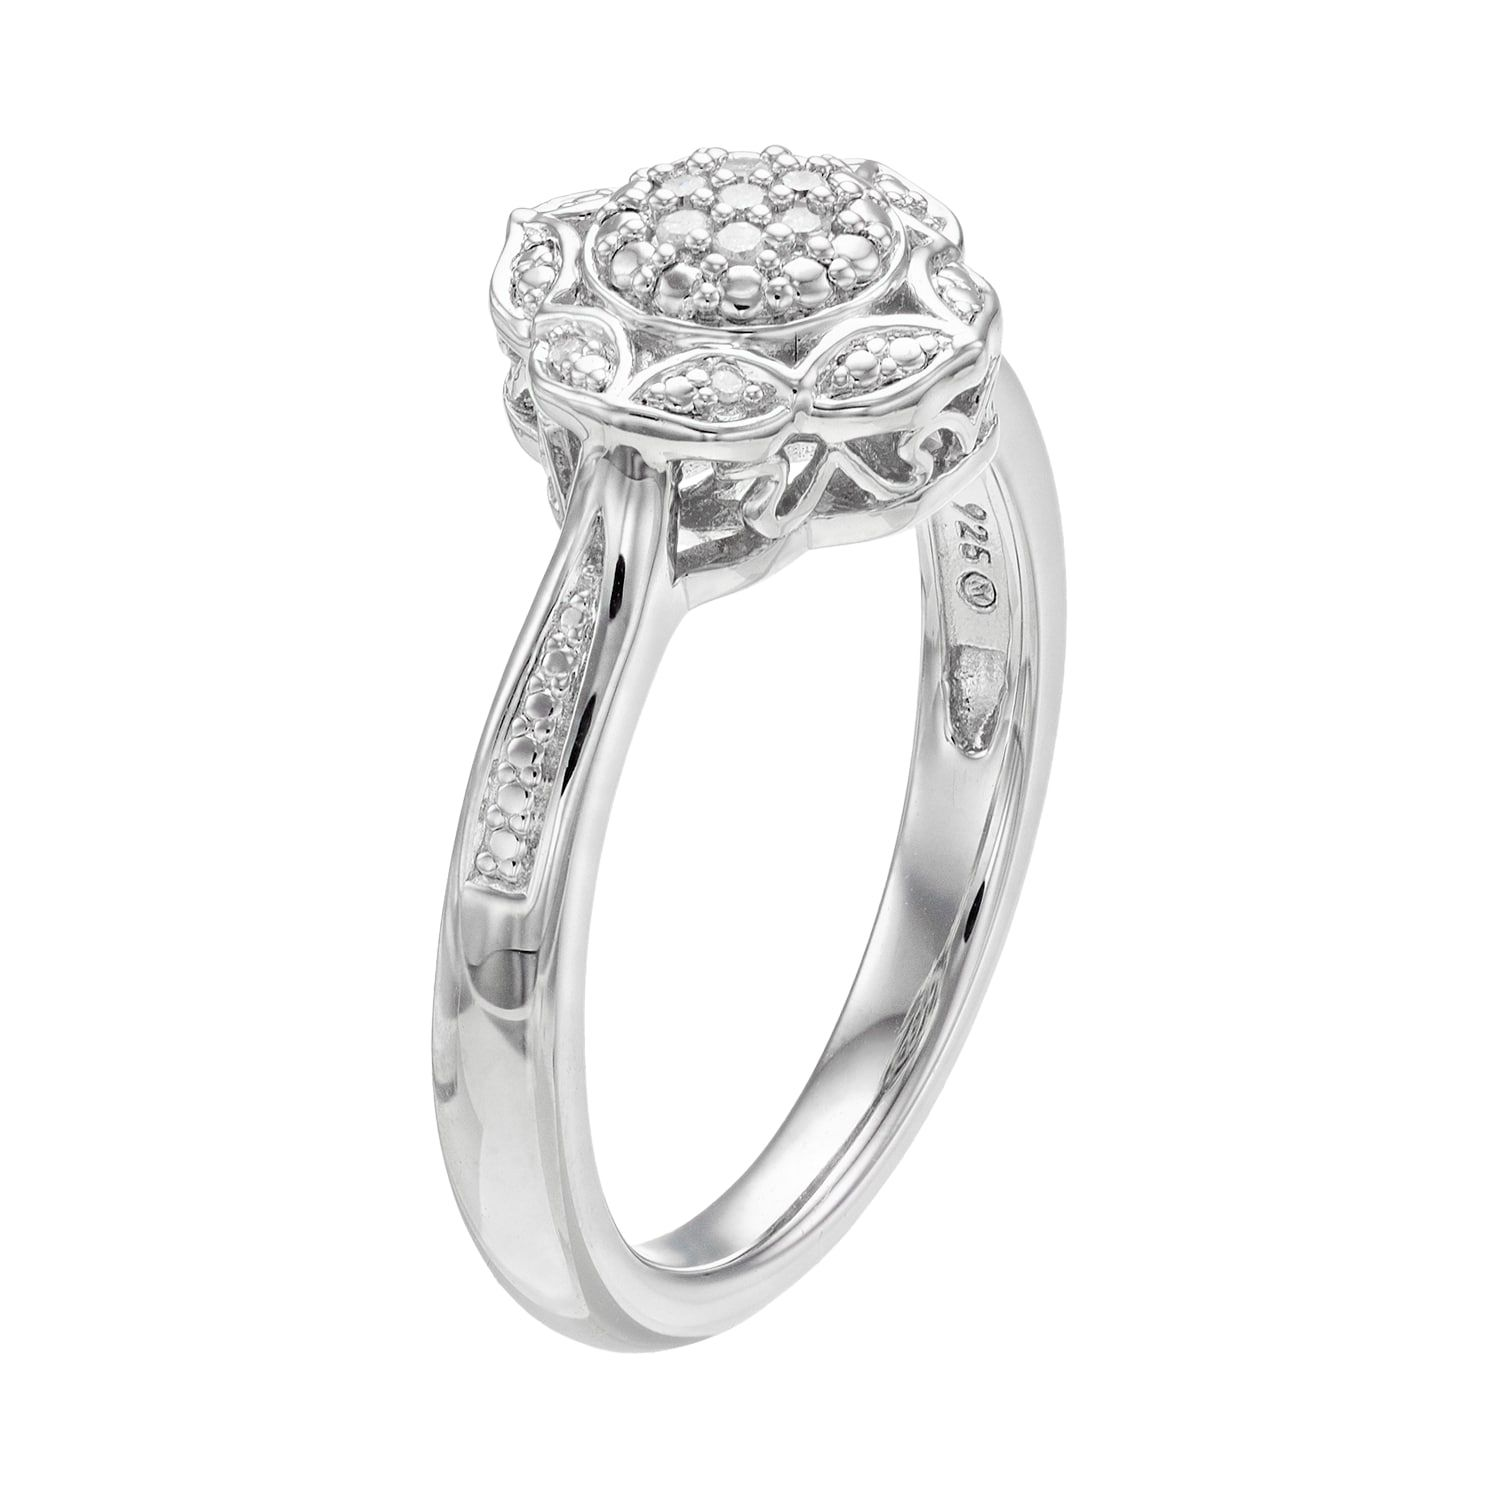 1744f34eb9b37 Simply Vera Vera Wang Sterling Silver Diamond Accent Flower Ring in ...